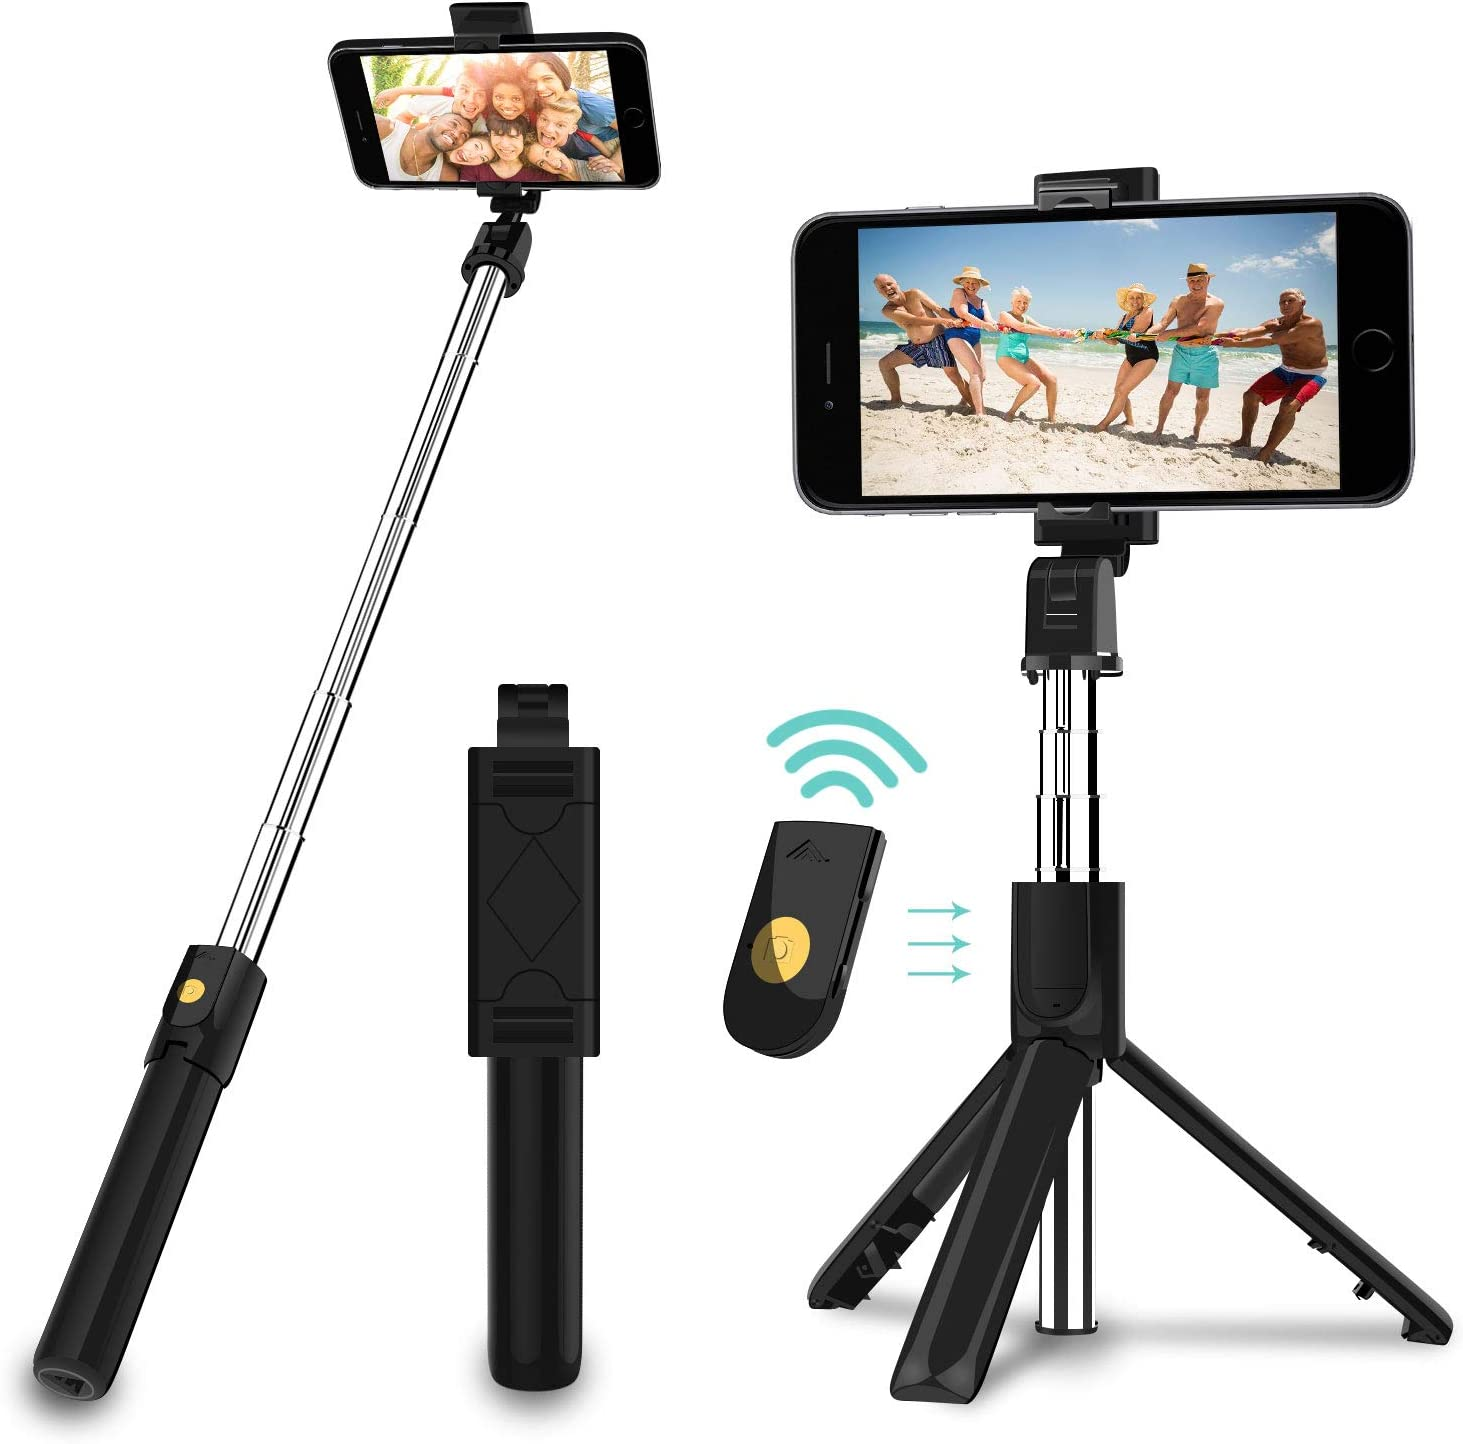 SYOSIN Selfie Stick, 3 in 1 Extendable Selfie Stick Tripod with Detachable Bluetooth Wireless Remote Phone Holder for iPhone Xs/iPhone 8/iPhone 7/7 Plus, Galaxy S10/S9 Plus/S8/Note8, LG, Google, More